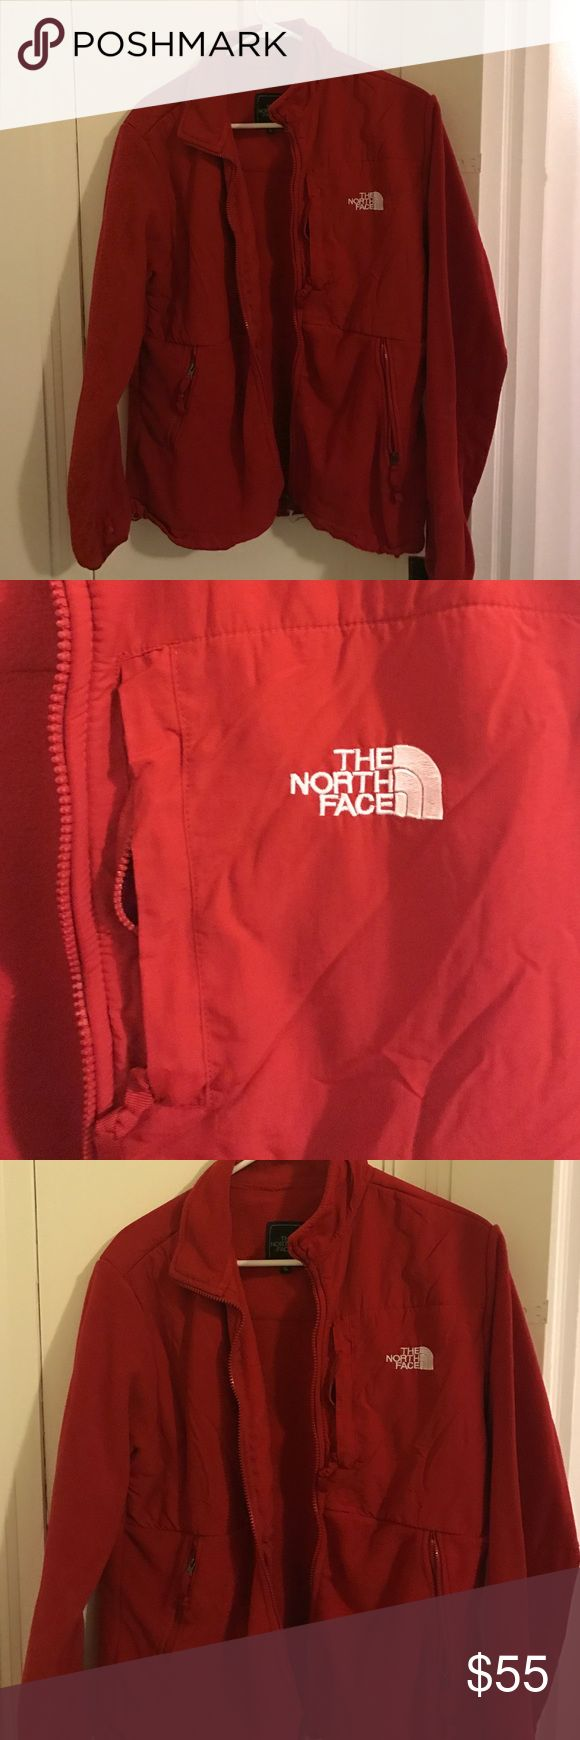 The North Face Red North Face Jacket The North Face Jackets & Coats